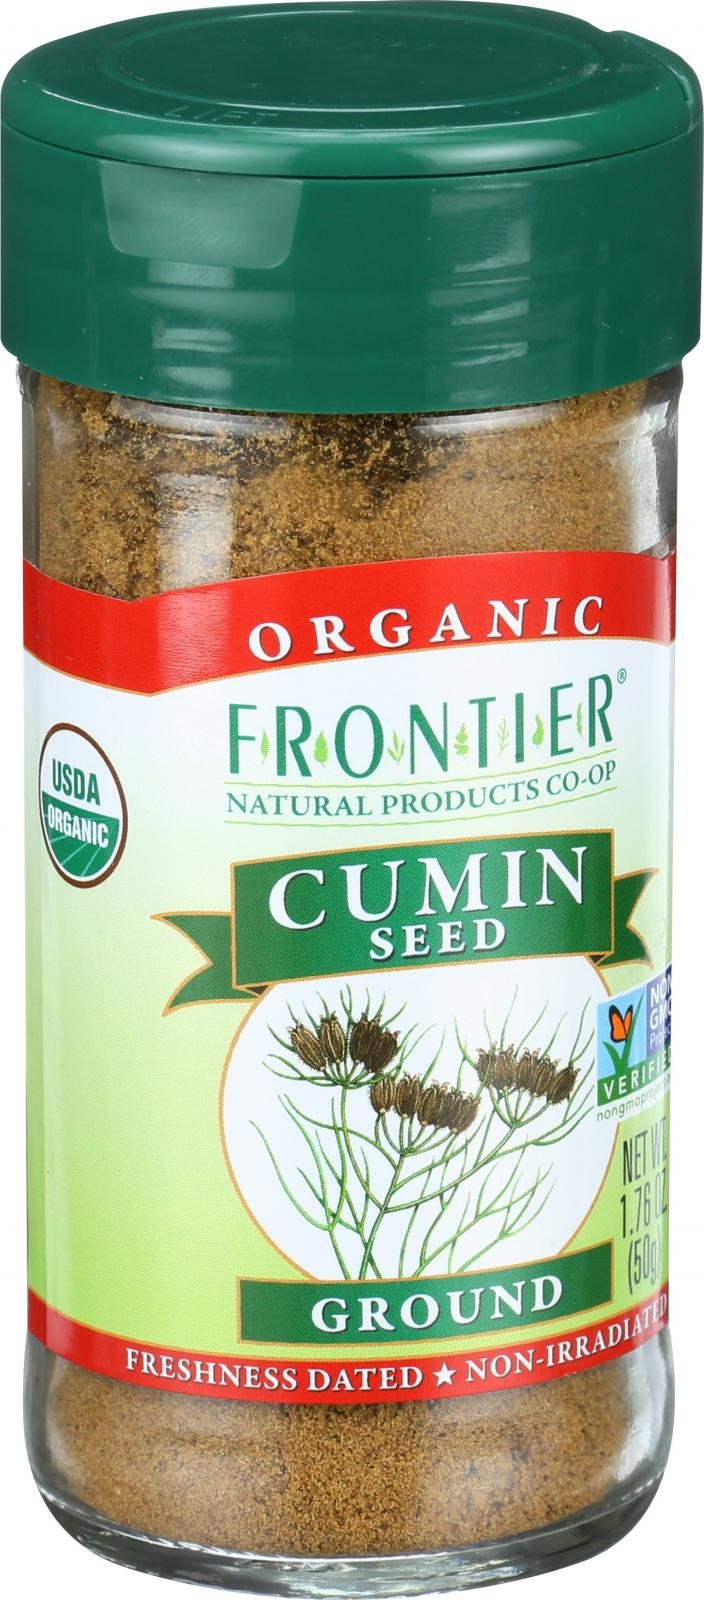 Frontier Herb Cumin Seed - Organic - Ground - Kosher - 1.76 oz